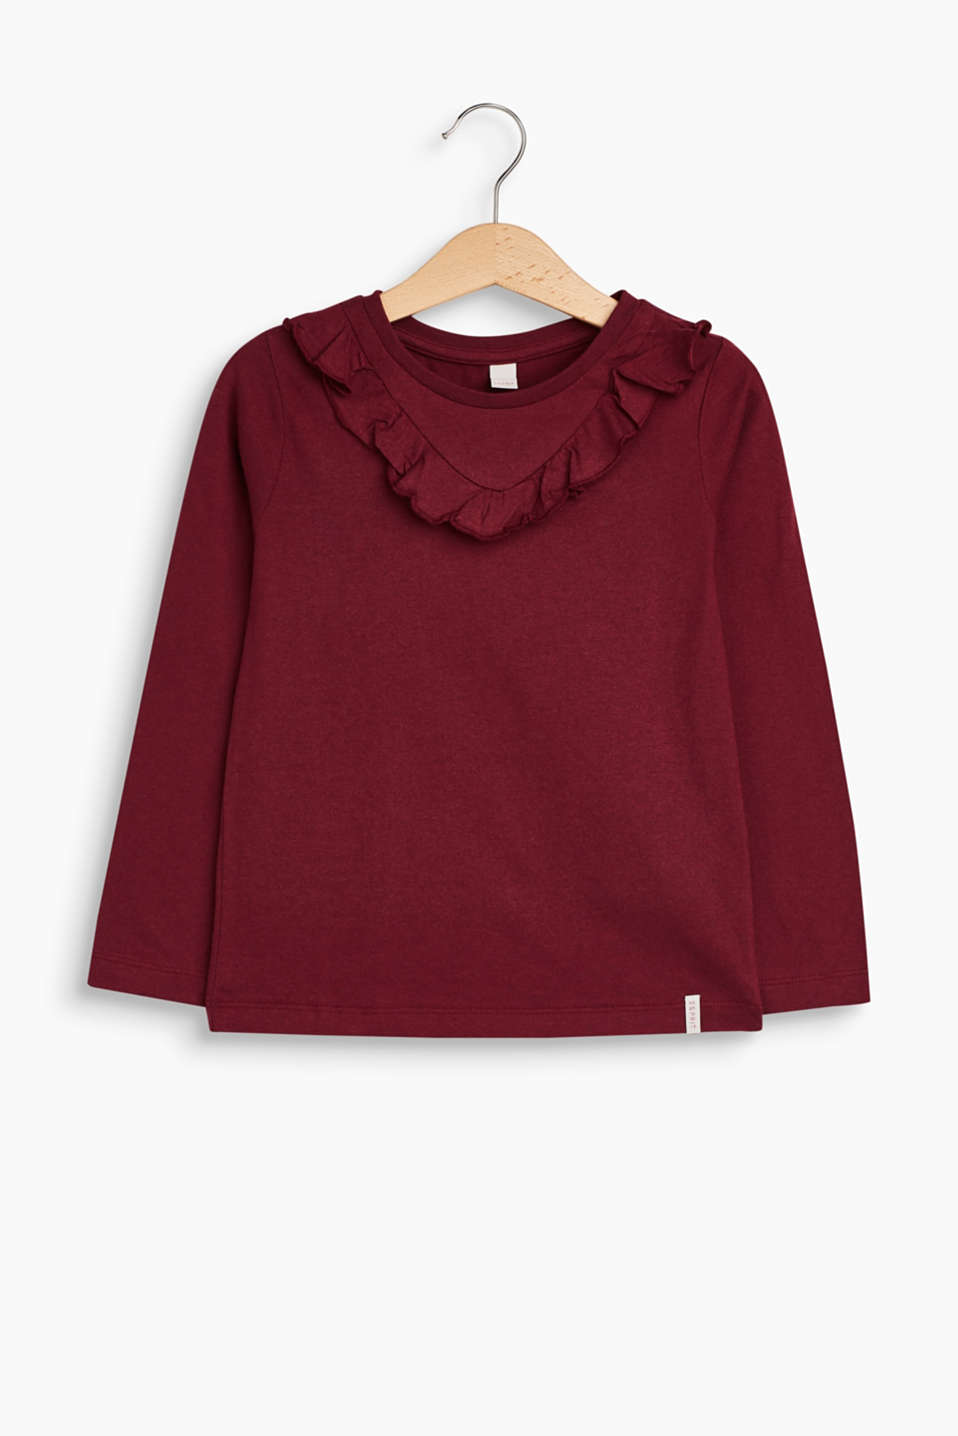 Great basic with a pretty note: melange long sleeve top with a flounce border on the neckline.